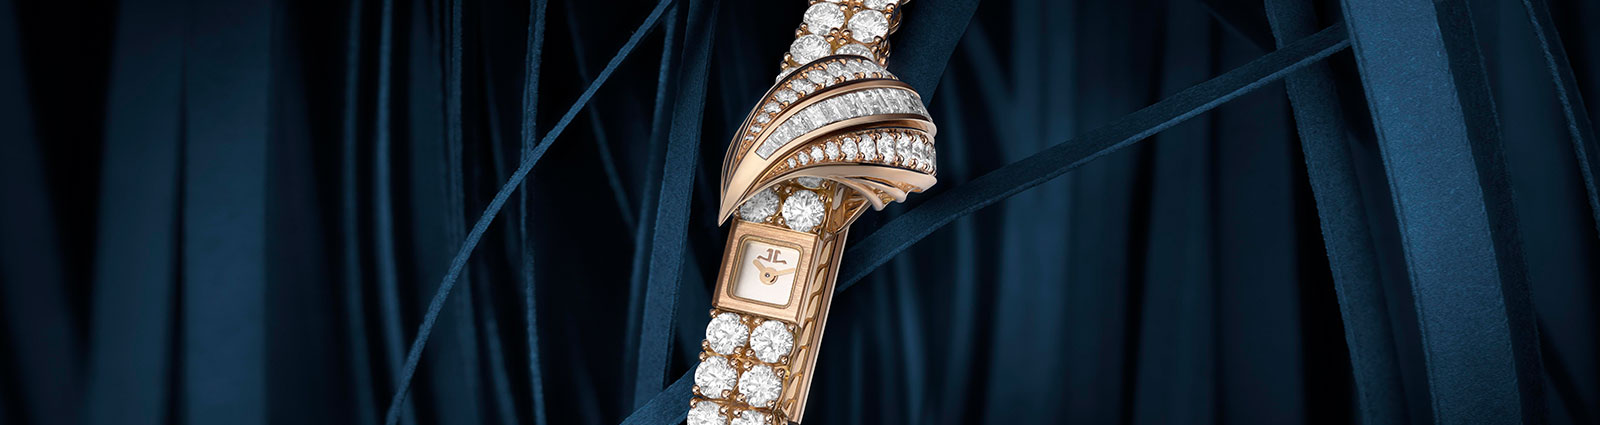 Jaeger-LeCoultre Joaillerie 101 Reine and 101 Feuille